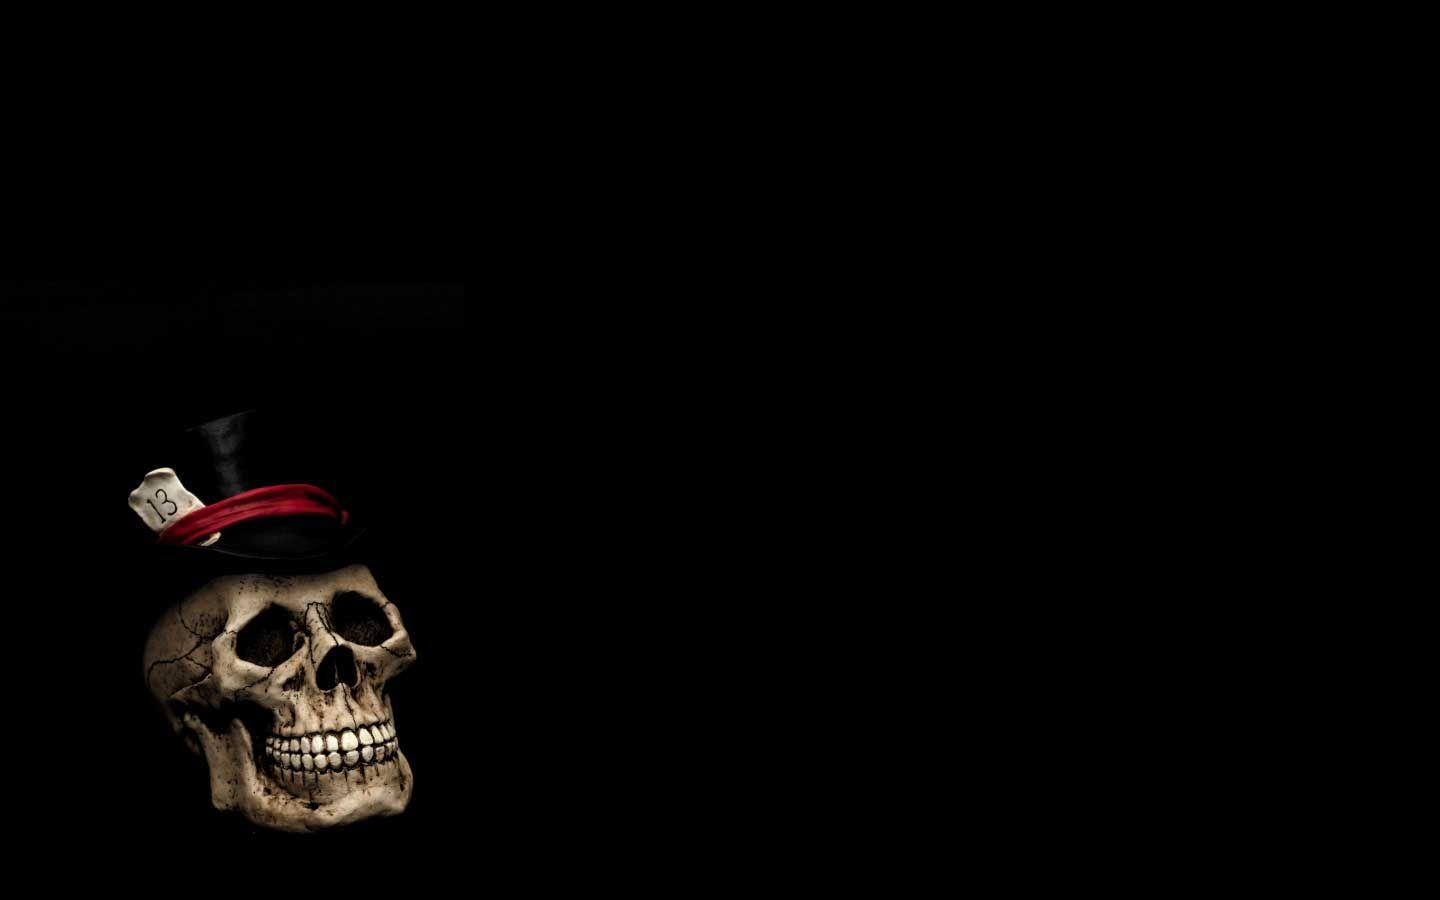 HD Wallpapers - 3d Skull Wallpapers wallpapers